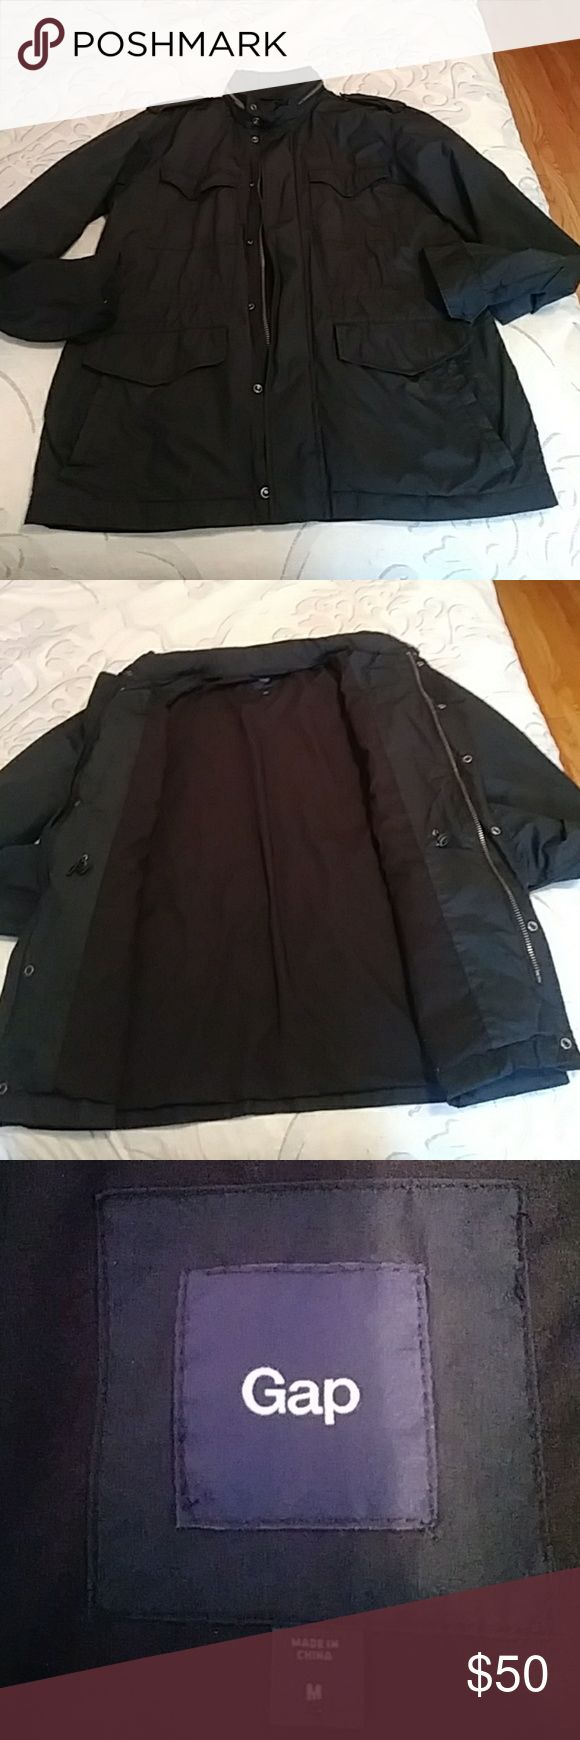 Gap men's jacket Men's navy Gap jacket perfect for fall spring or if you wearing the sweater be great to pull over in great condition worn only maybe 5 times buttons and zipper works also comes with hood is good for the rain GAP Jackets & Coats Lightweight & Shirt Jackets